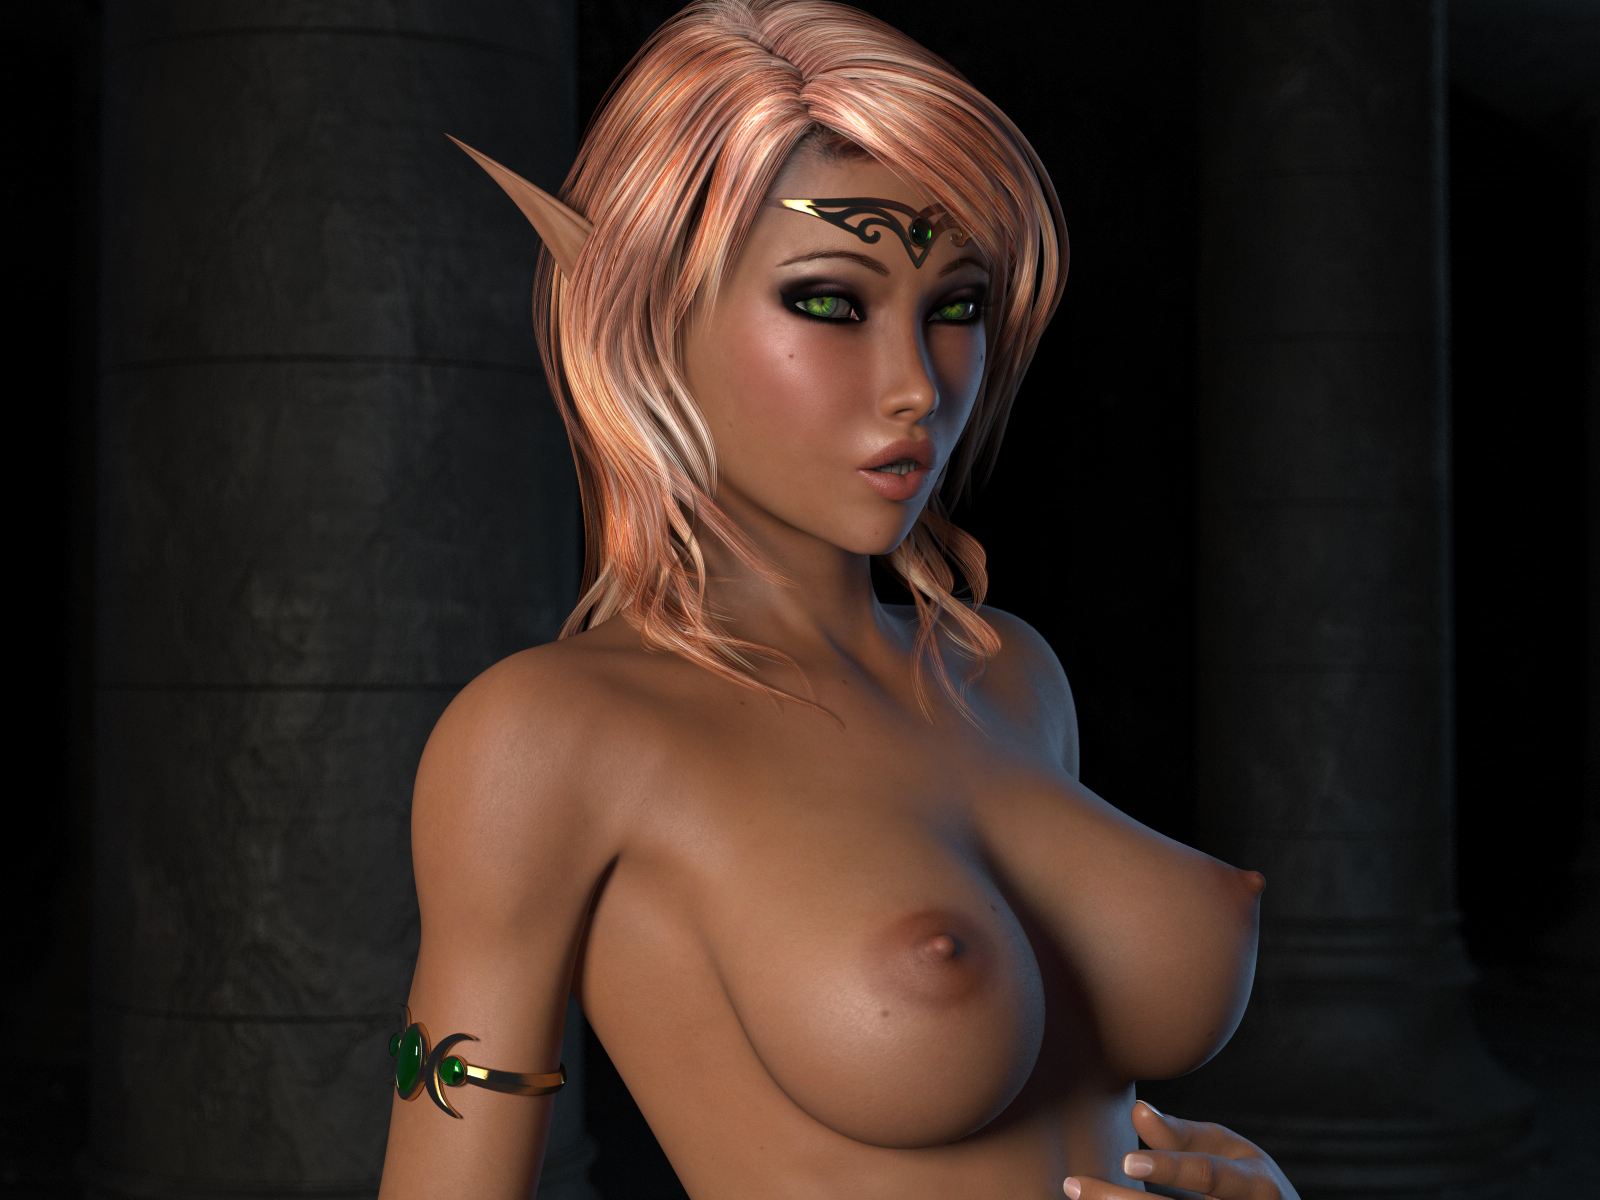 Free dark elf girls nude sex erotic download